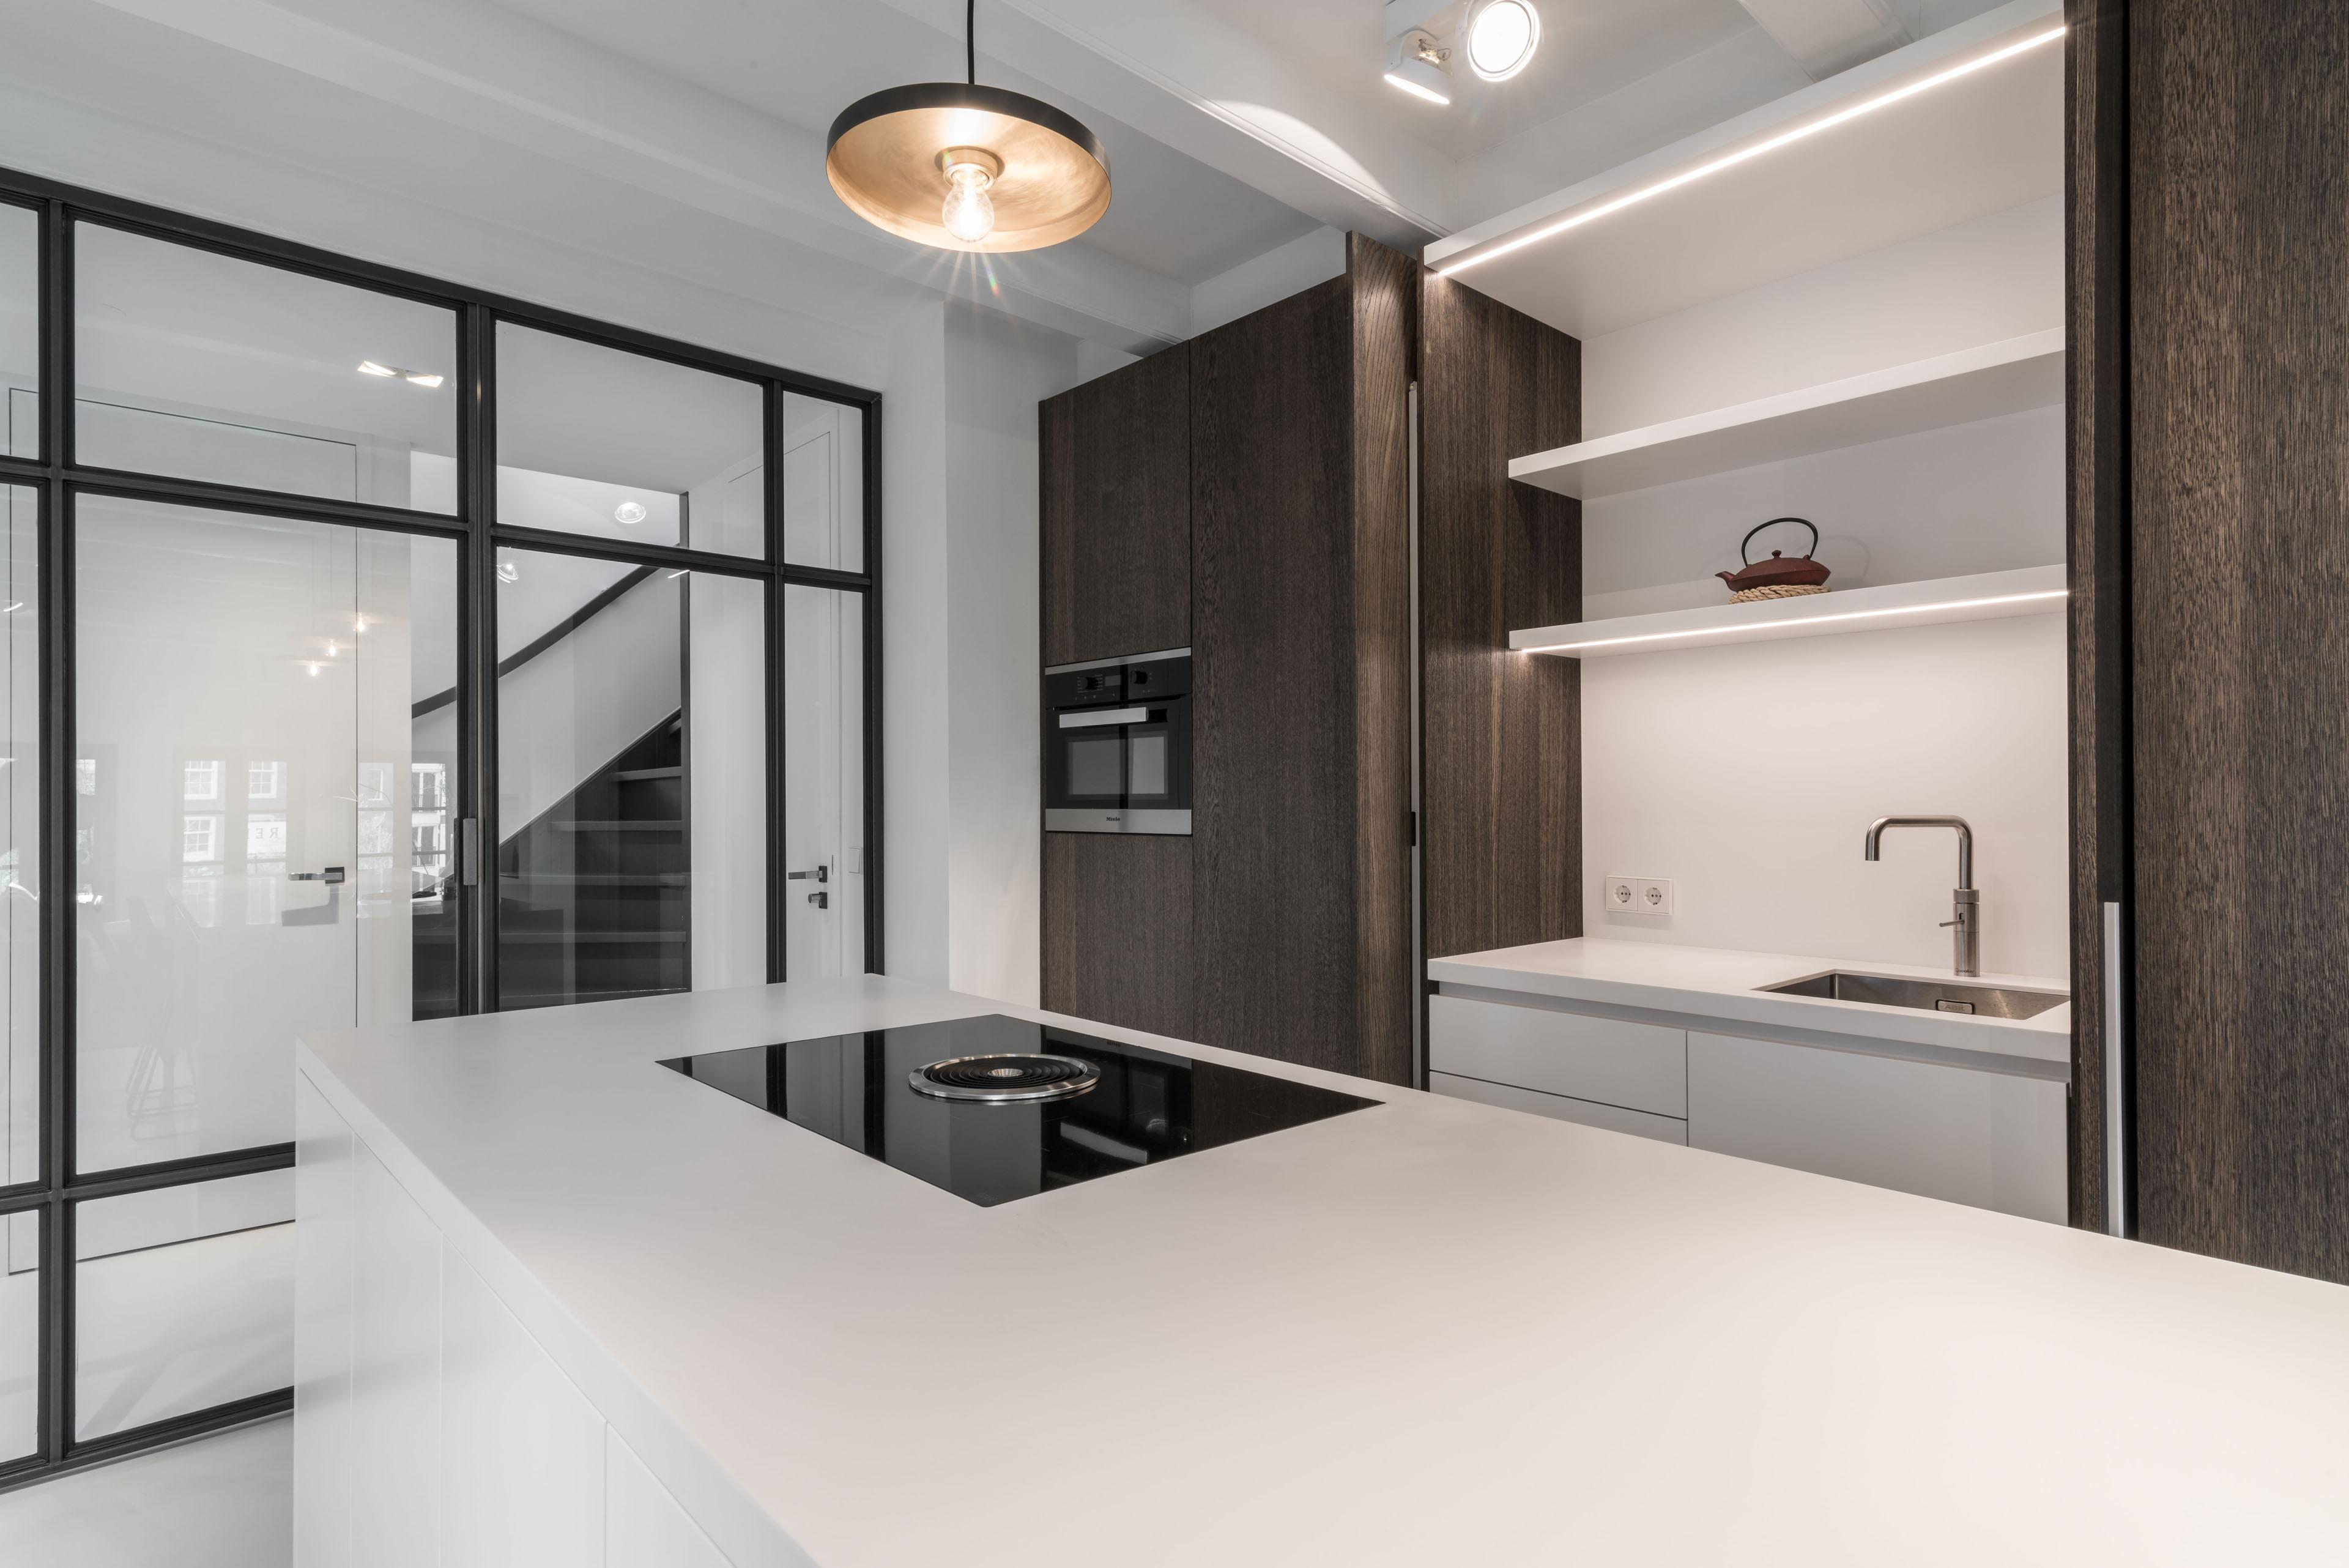 Kool_Kitchen_Constantin_Loft_Basic_007.jpg